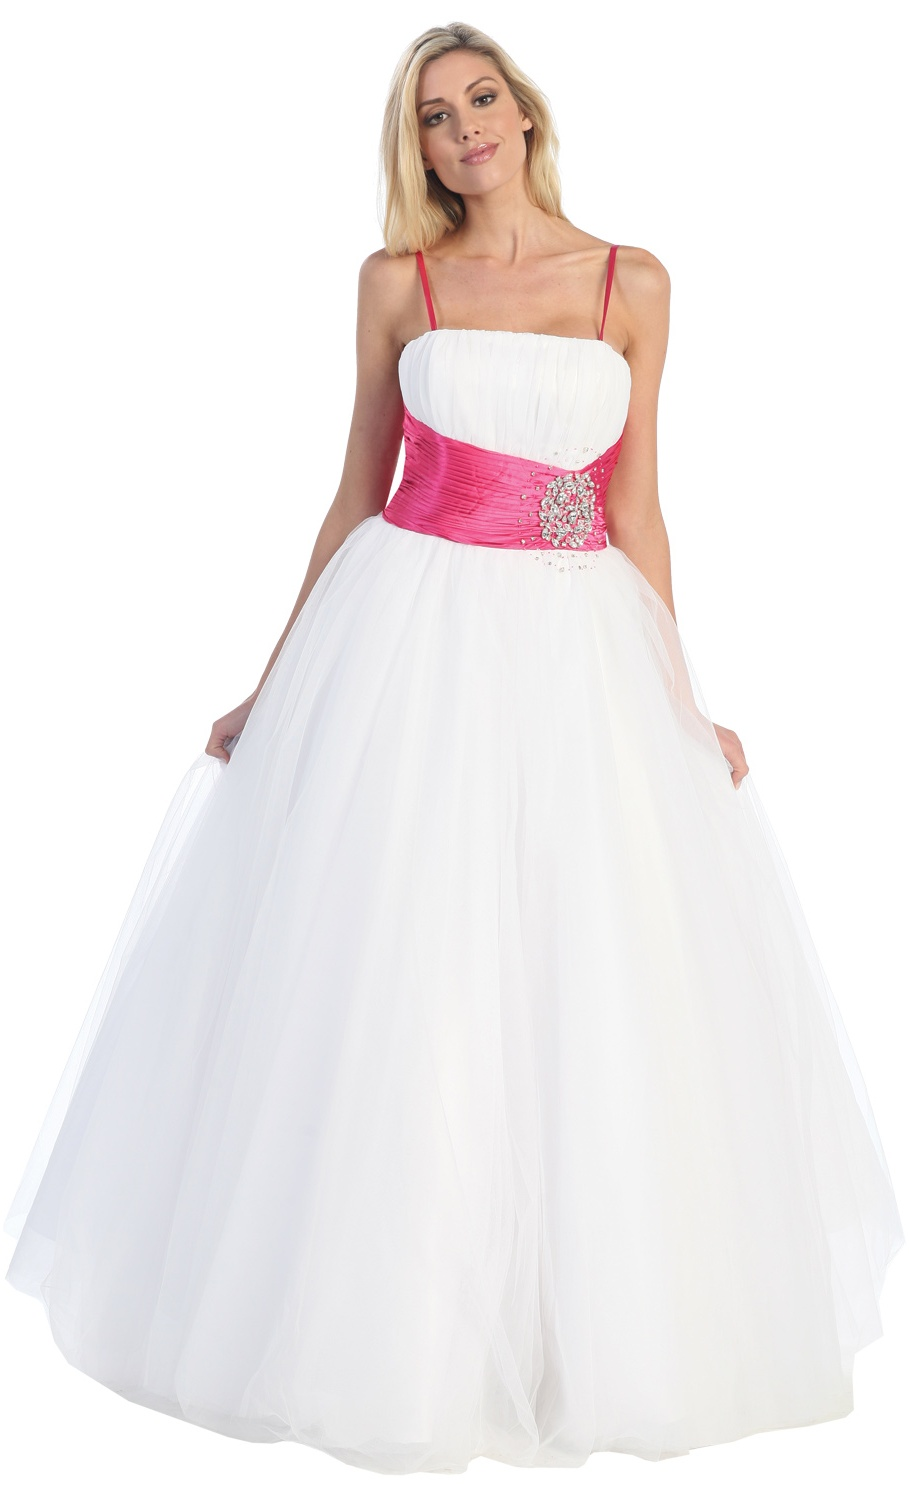 Robe de princesse 085697 Blanc/turquoise Taille 40